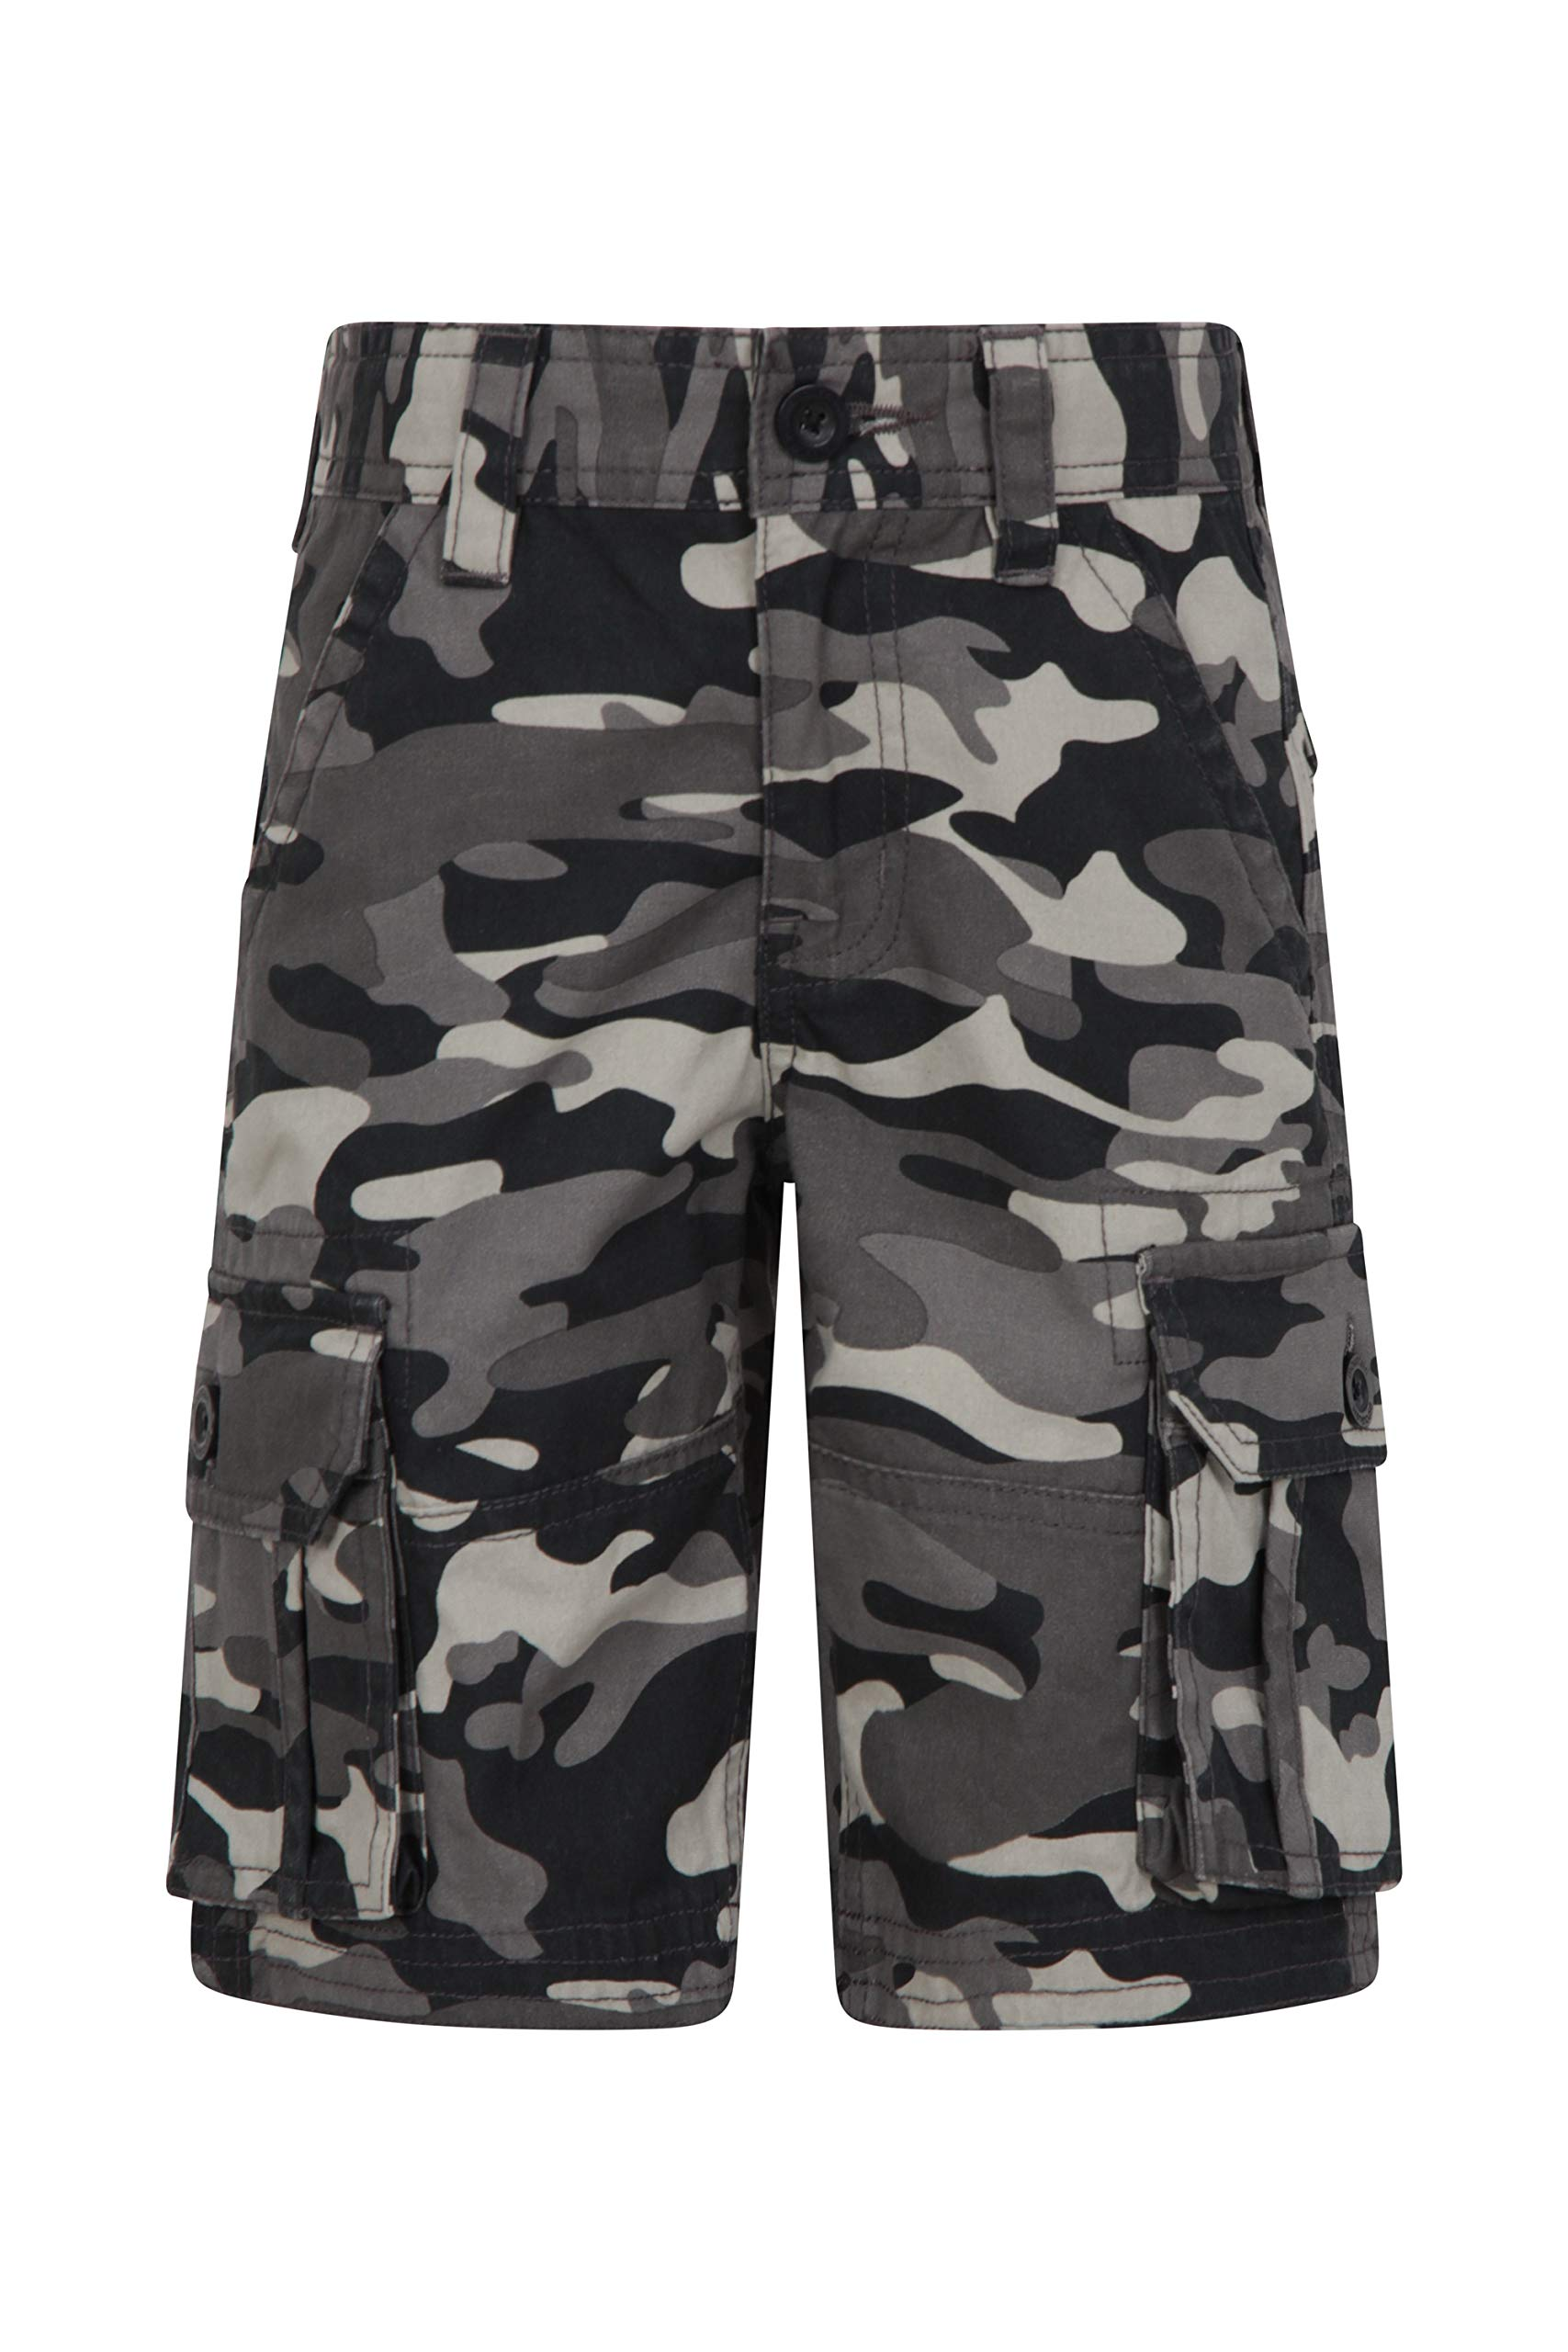 Mountain Warehouse Kids Camo Cargo Shorts - 100% Cotton Summer Pants Black 5-6 Years by Mountain Warehouse